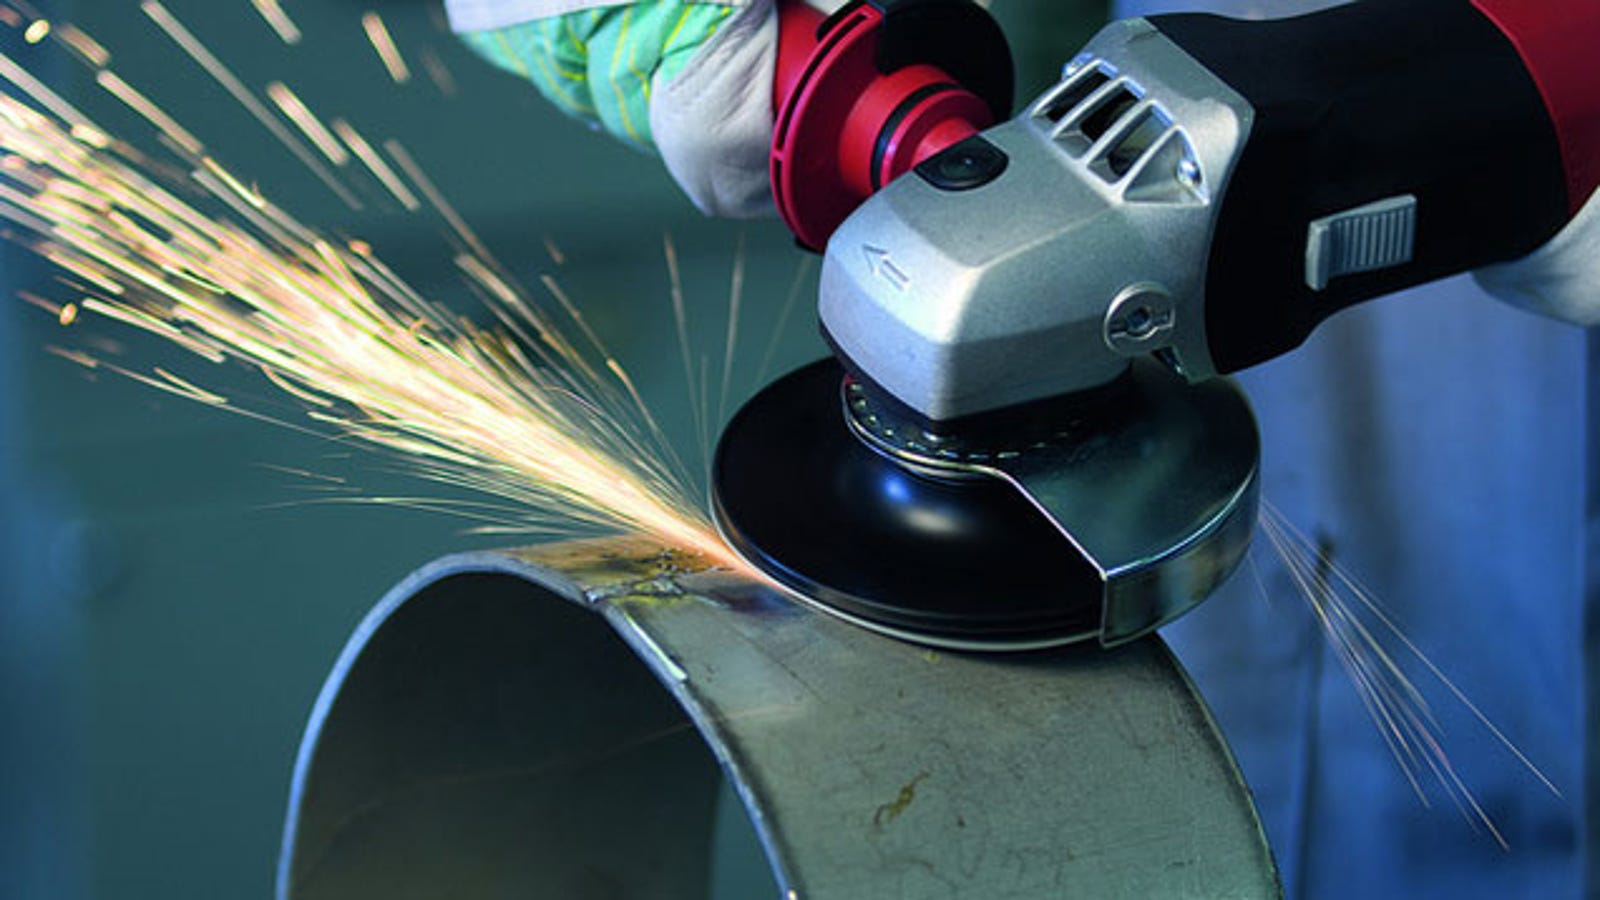 Tool School Cut Grind And Polish With The Versatile Angle Grinder